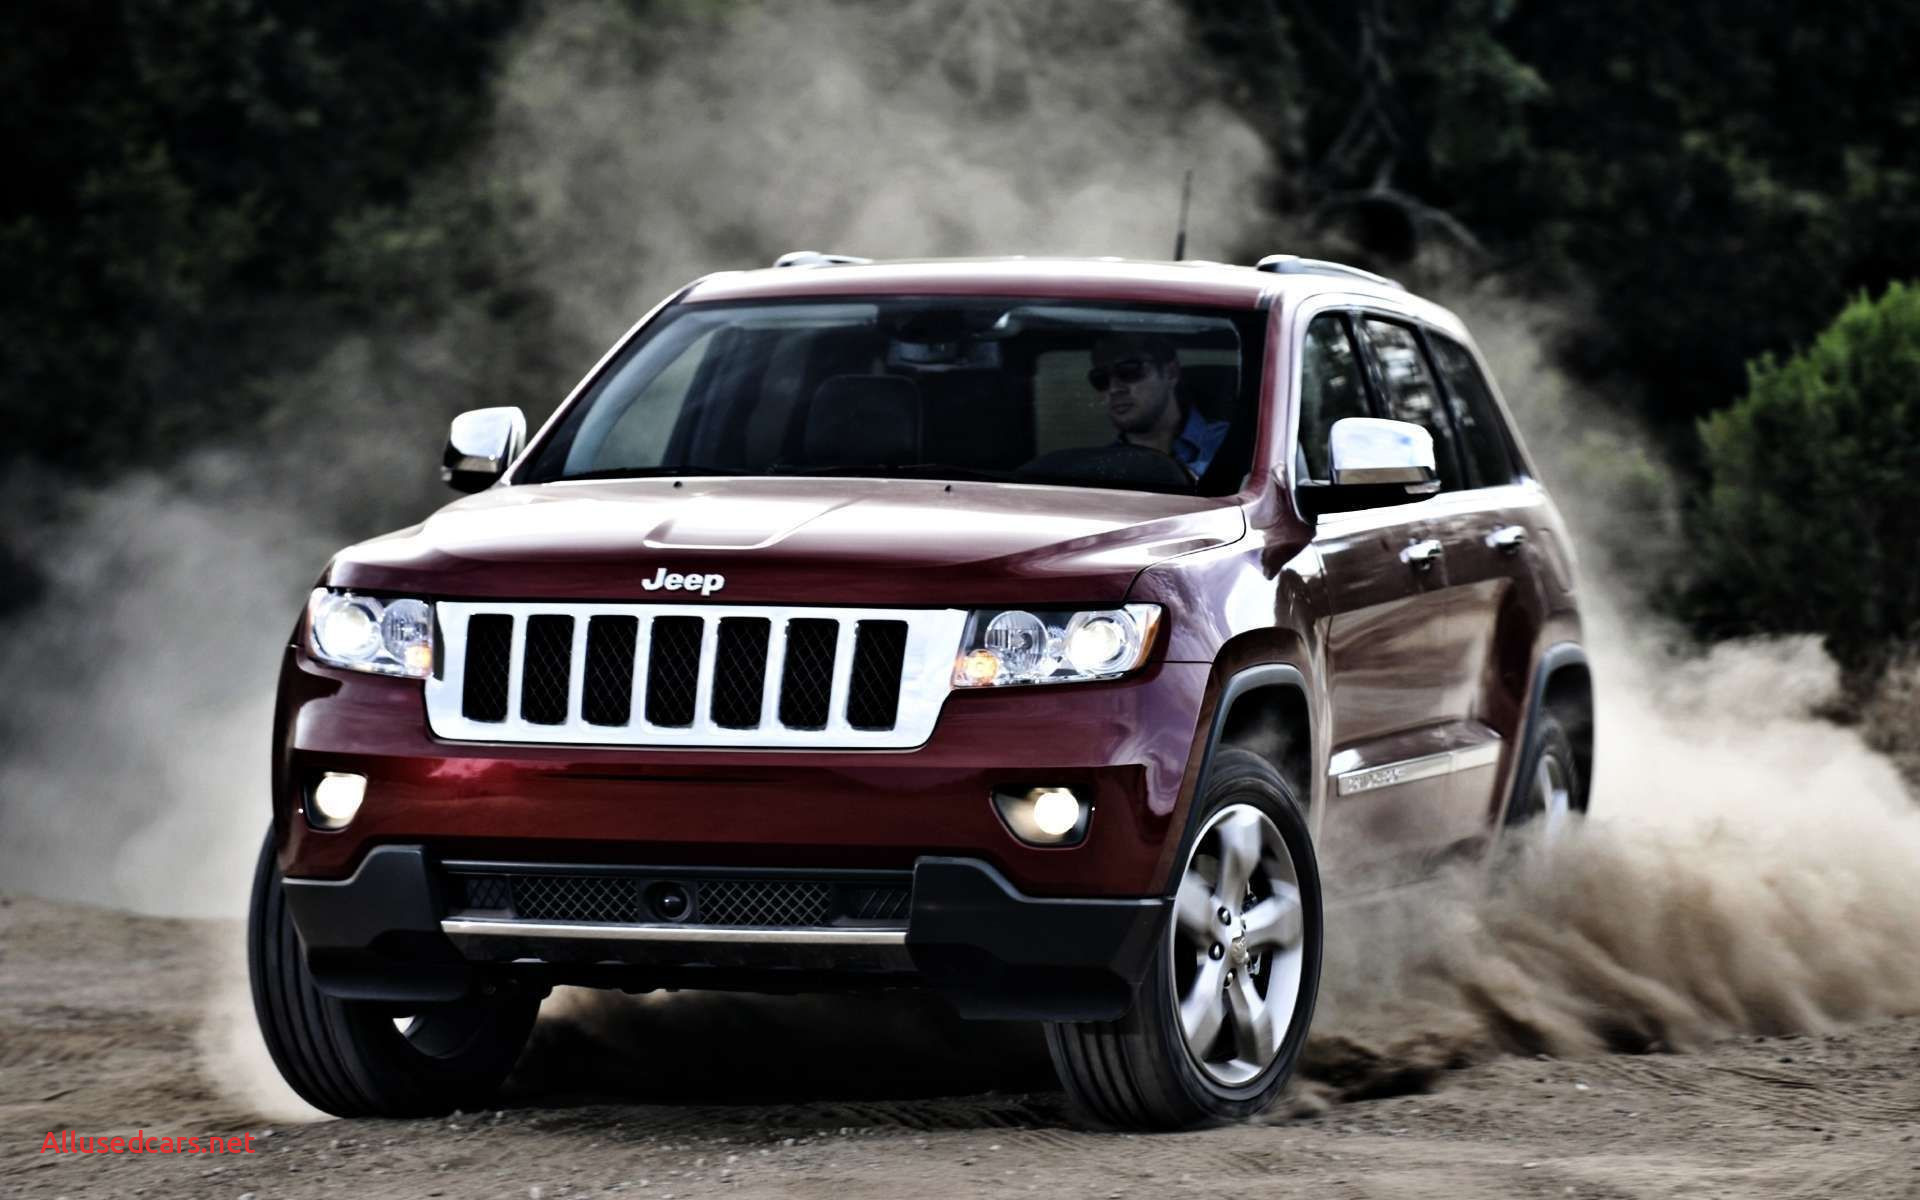 2010 Jeep Grand Cherokee Beautiful Pin by Hd Wallpapers On Bike & Cars Wallpapers